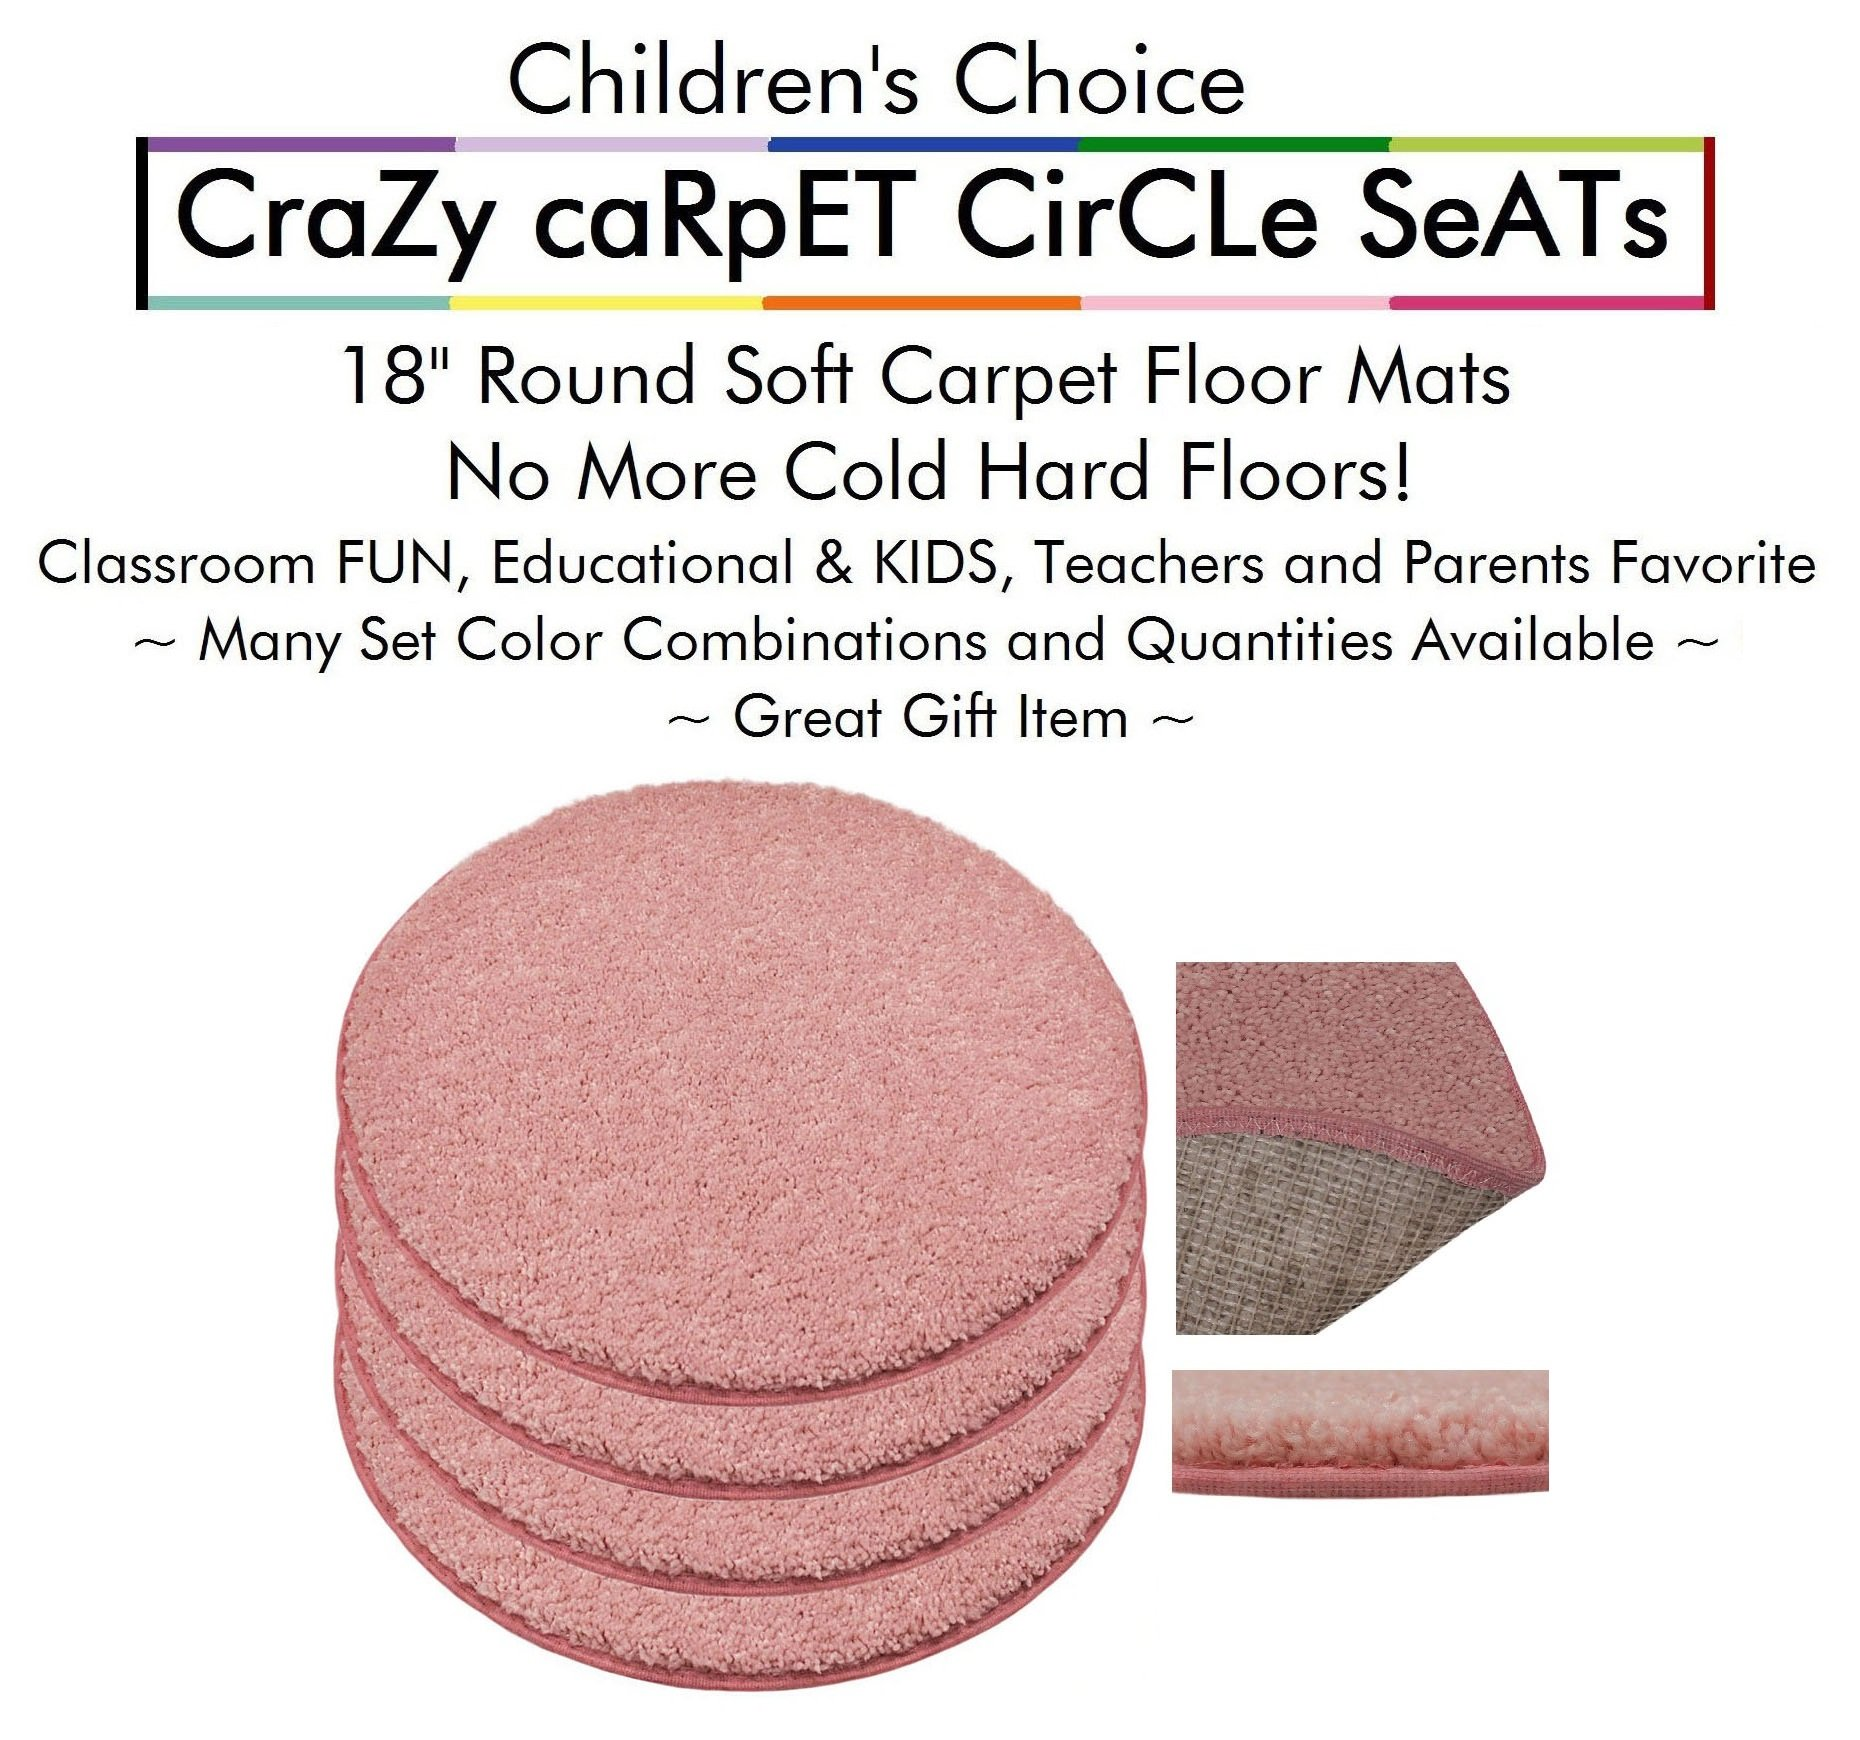 """Set 4 - Fairy Dust Kids CraZy CarPet CirCle SeaTs 18"""" Round Soft Warm Floor Mat - Cushions   Classroom, Story Time, Group Activity, Time-Out Spot Marker and Fun. Home Bedroom & Play Areas"""